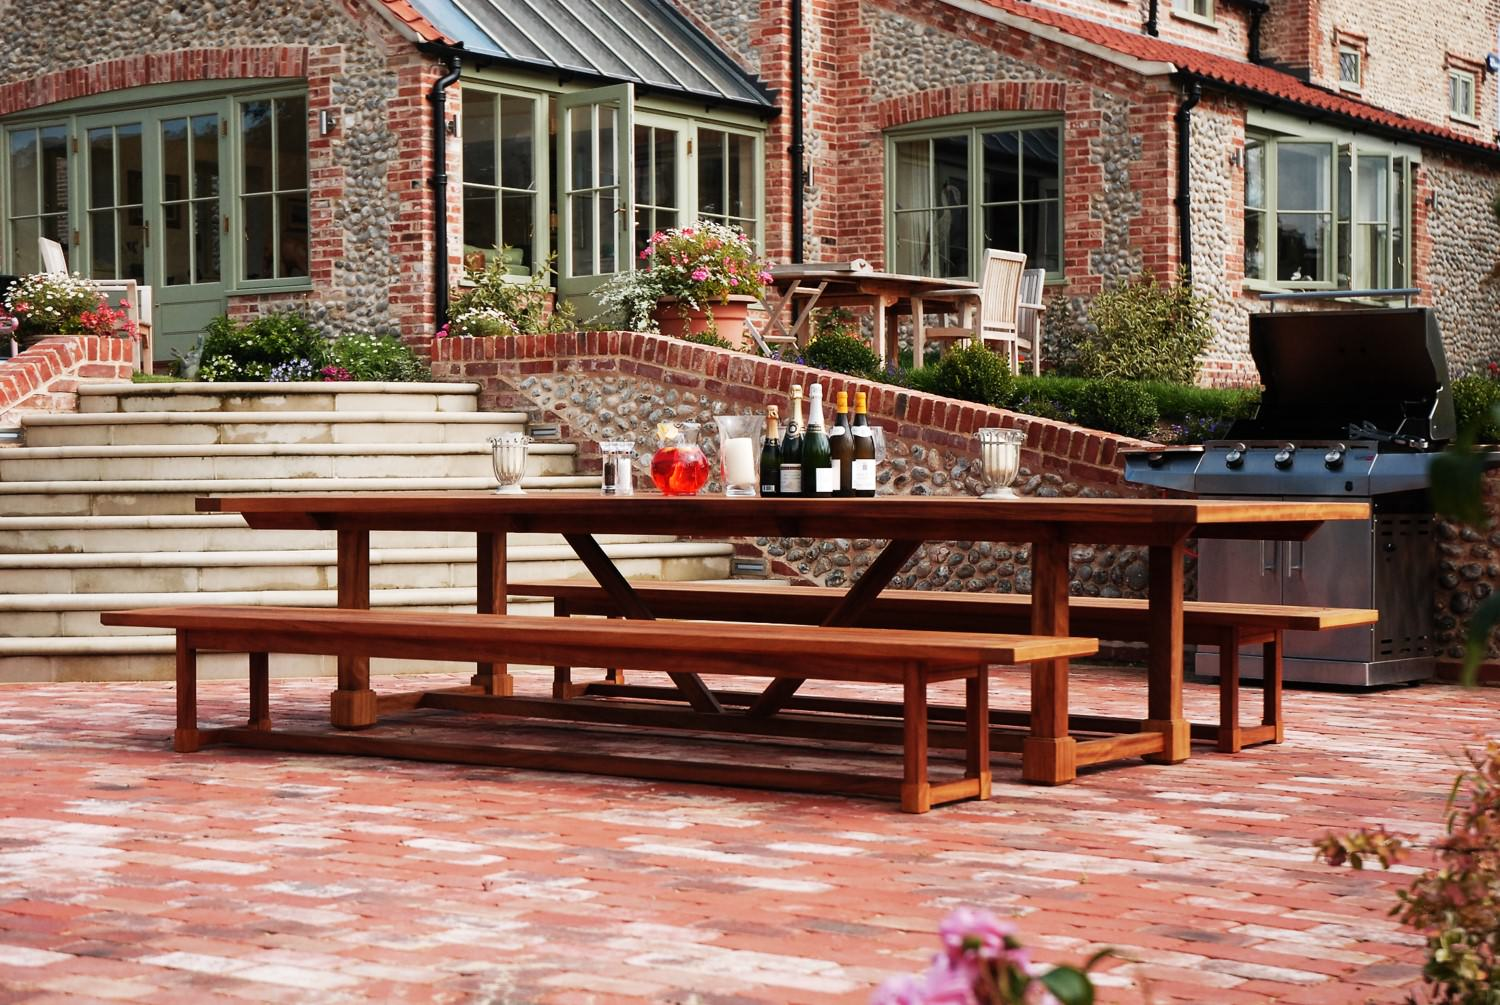 Handmade Garden Banqueting Table 12-14 Seater